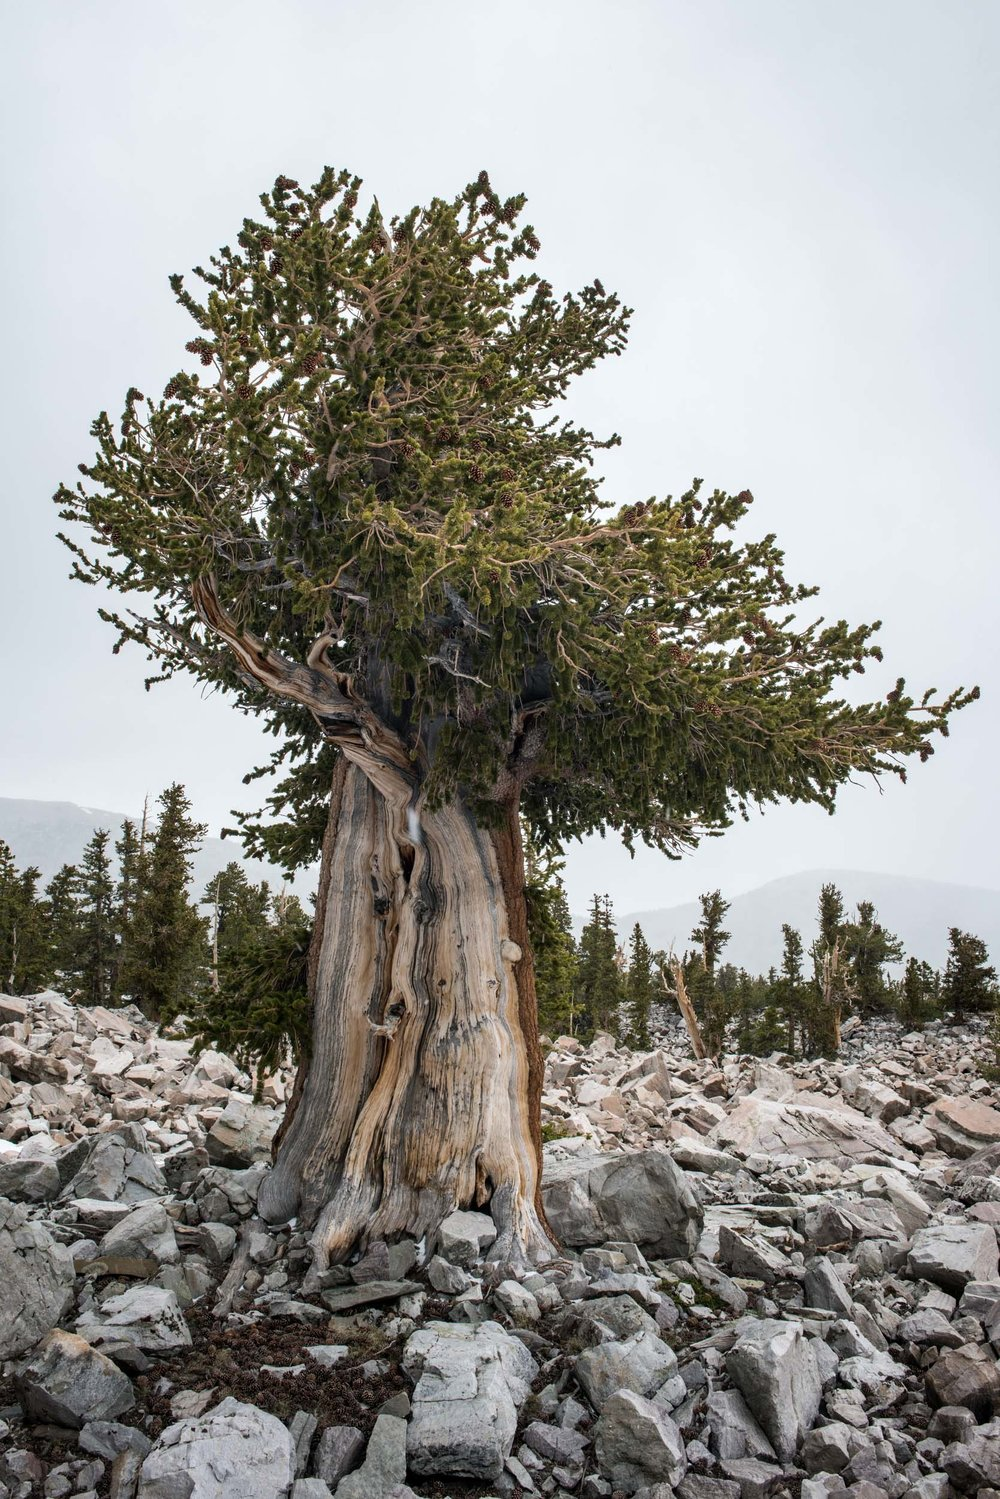 A 2,000 year old Bristlecone pine tree growing at 11,000' in the glacier moraine near Wheeler Peak. Great Basin National Park, Nevada.